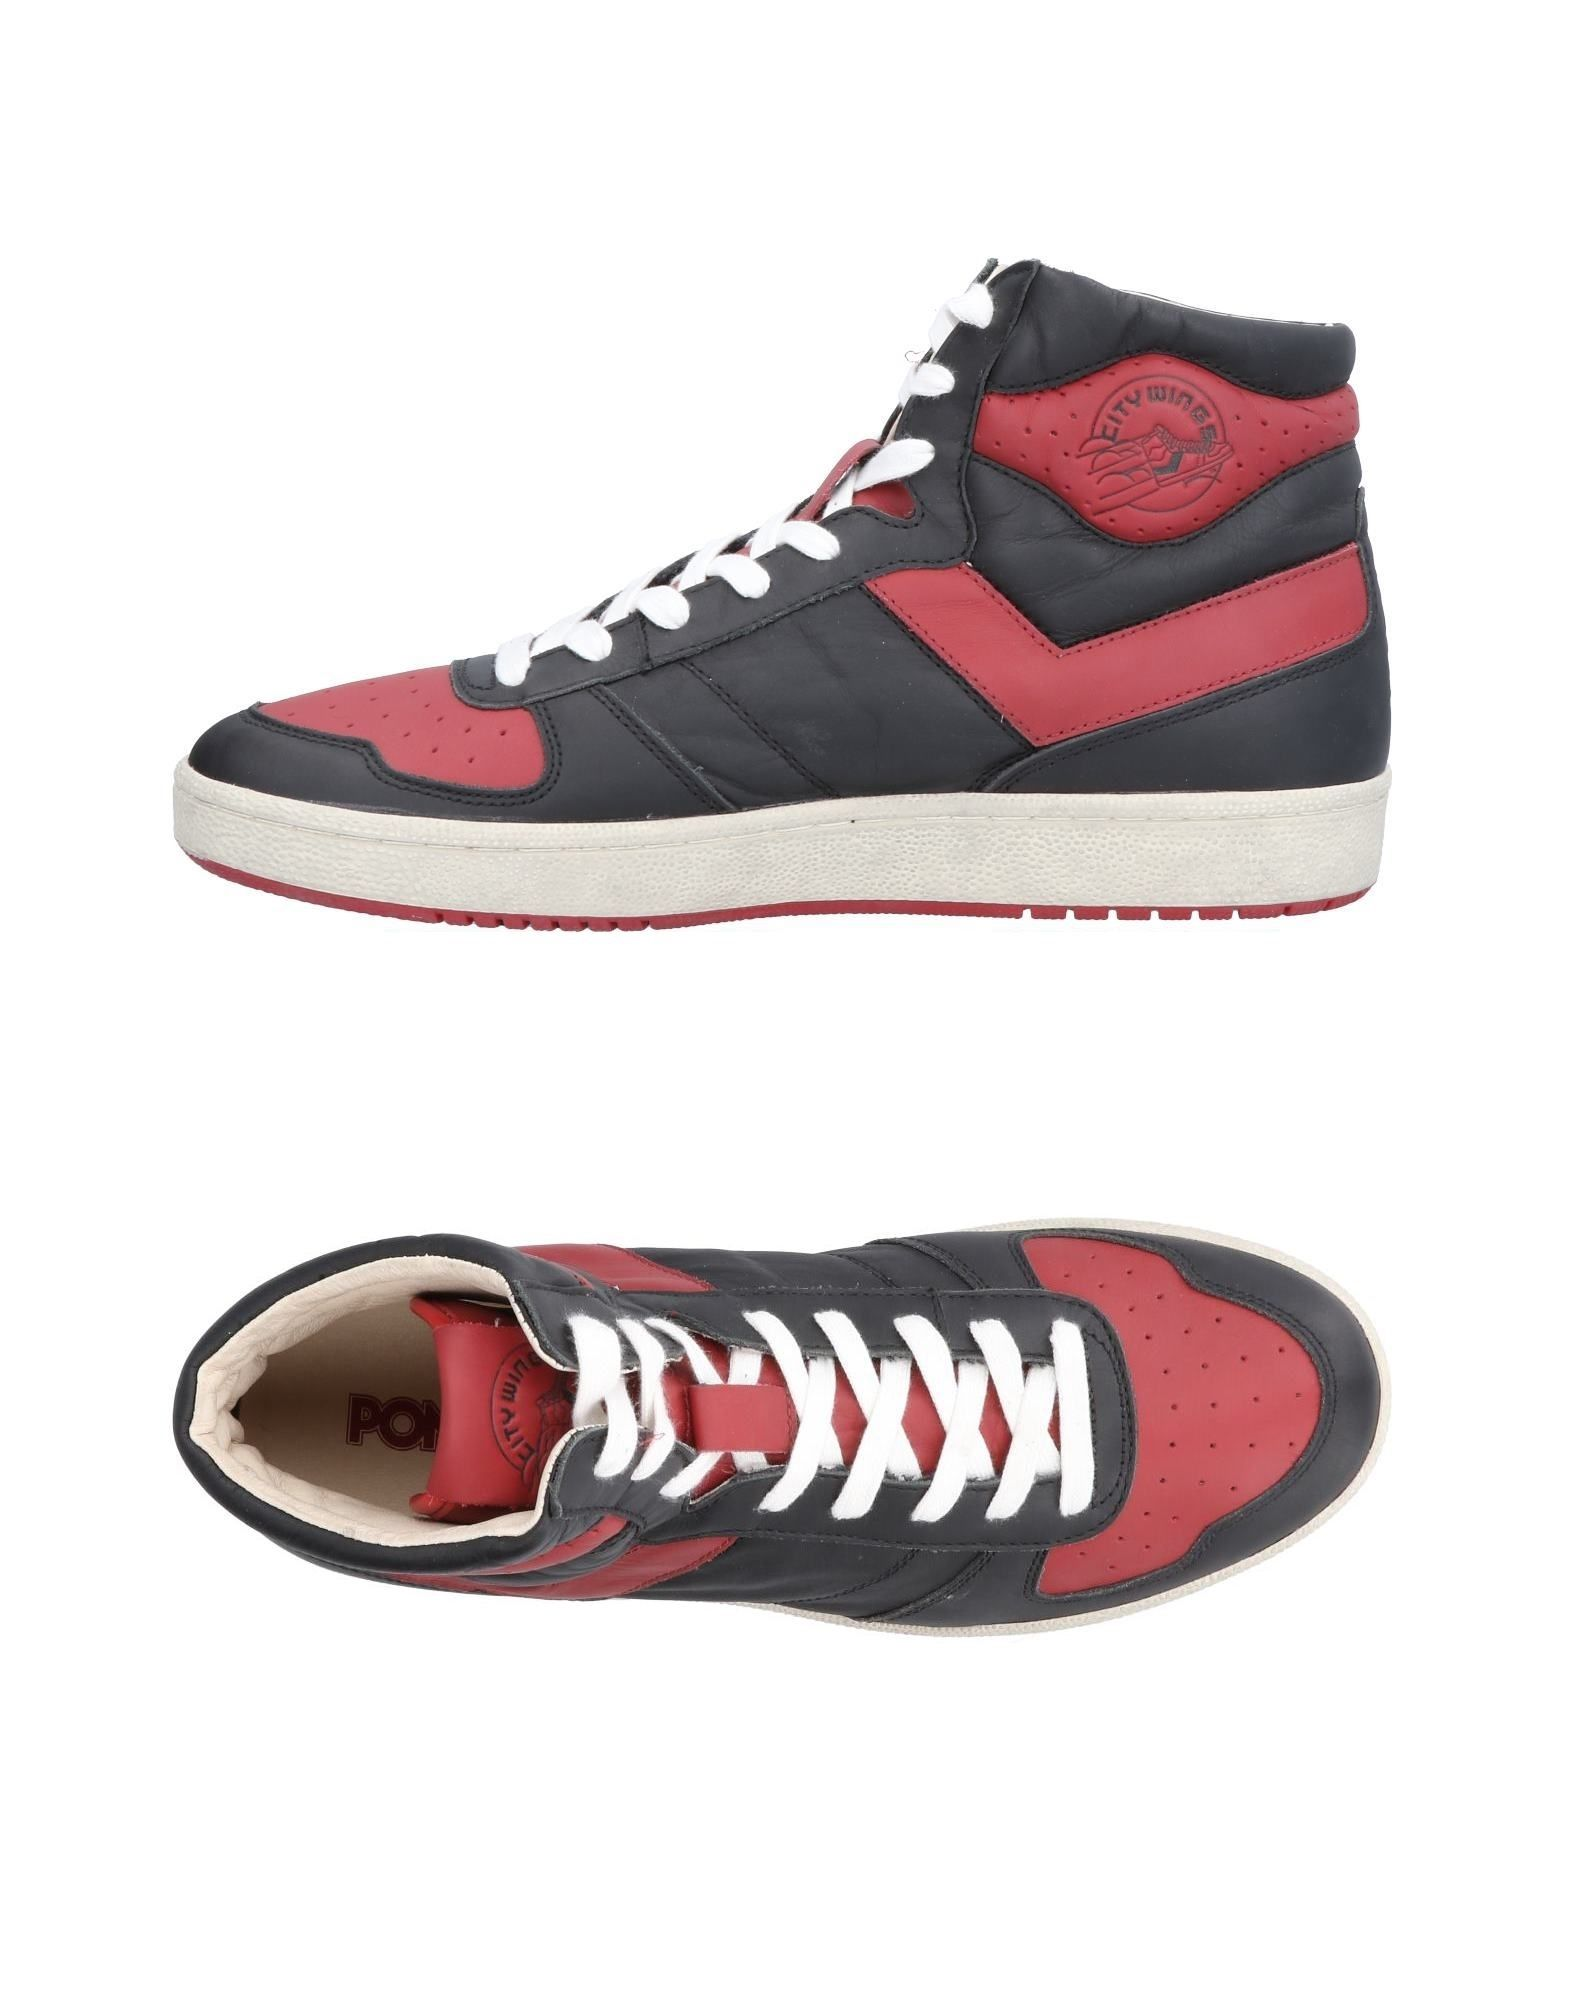 Pony Sneakers Sneakers - Men Pony Sneakers Pony online on  United Kingdom - 11496348VJ 81e097